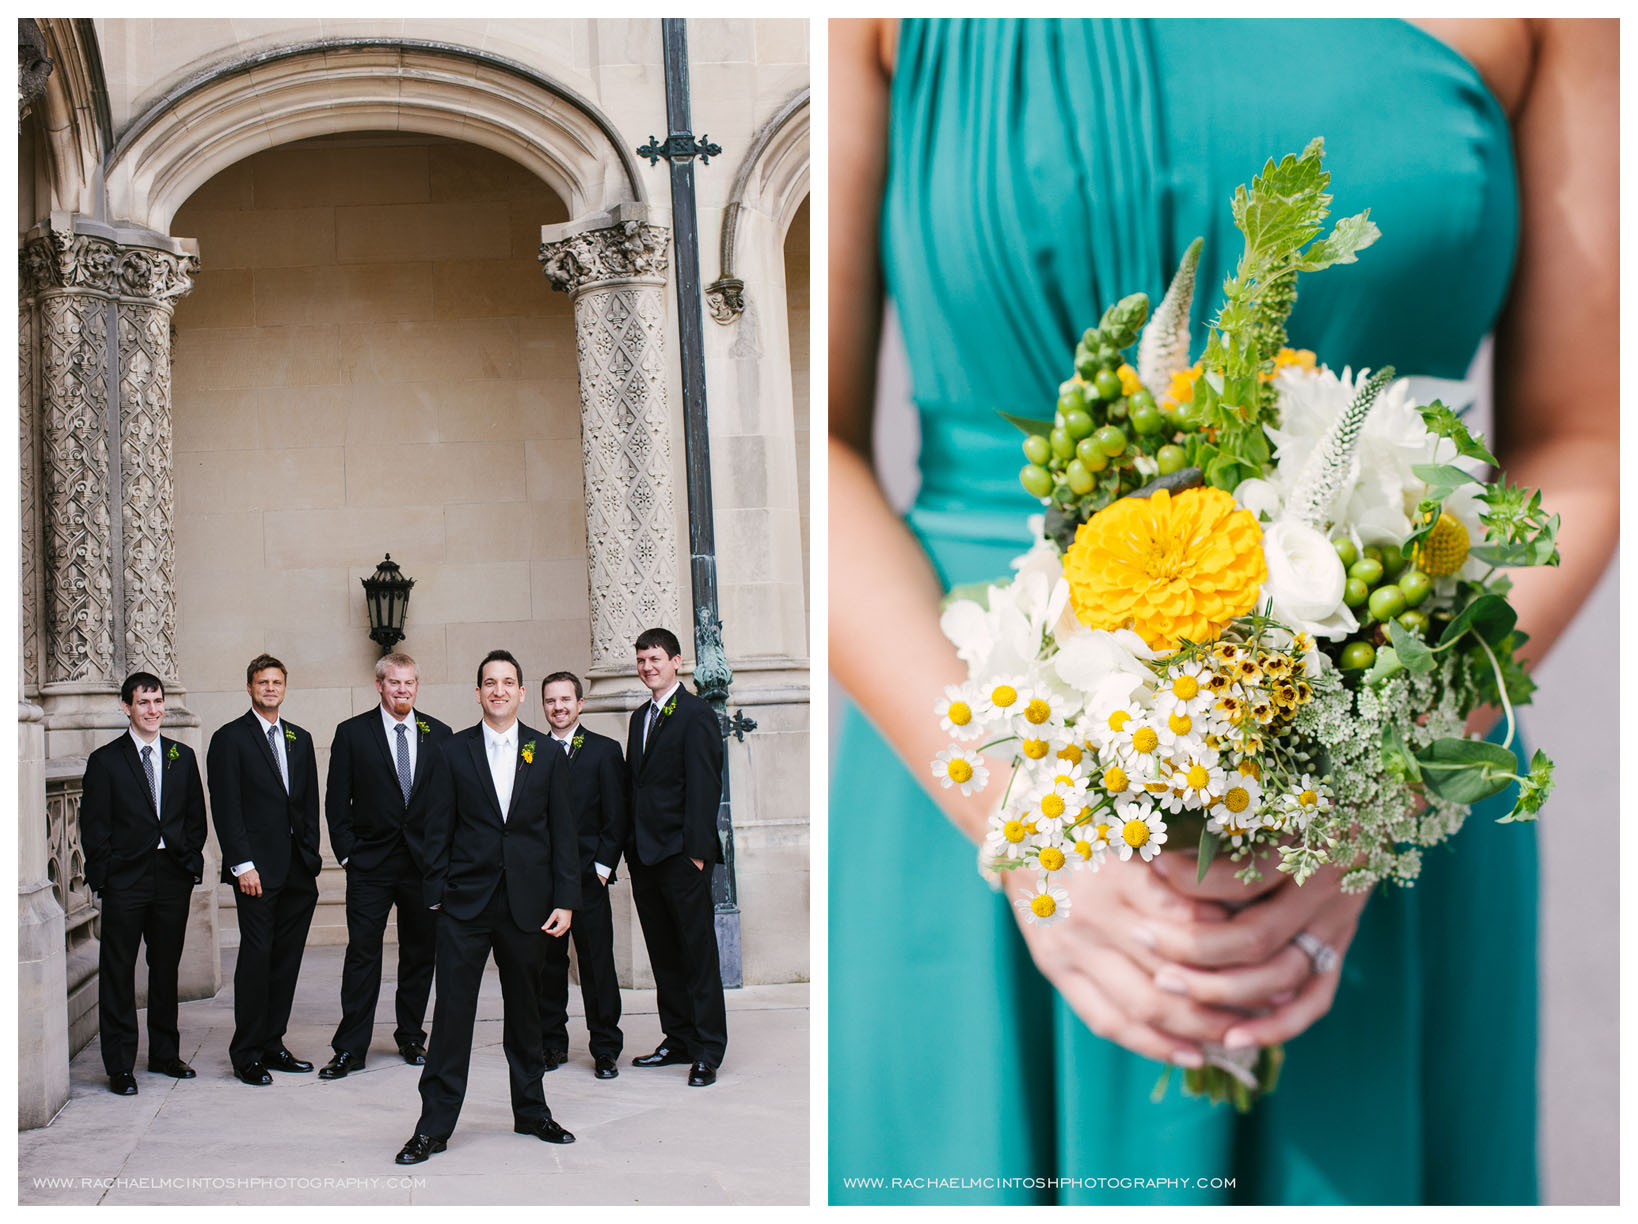 Asheville Wedding Photographer-Crest Center Wedding-Erin & Brian's Biltmore Wedding 16.jpg